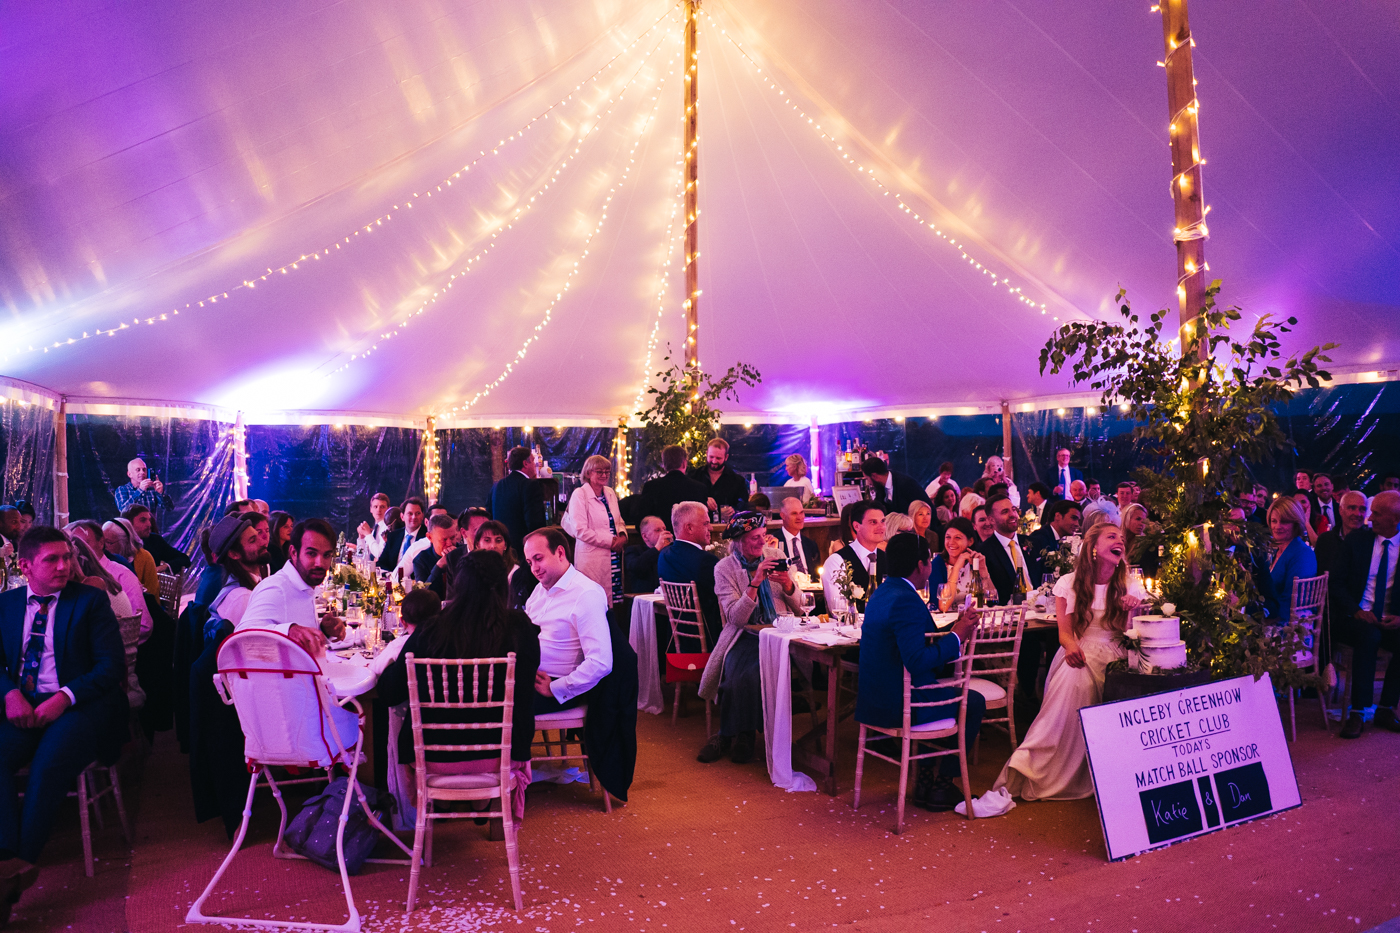 north-yorkshire-marquee-wedding-photographer-teesside-north-east-wedding-photography-0090.jpg